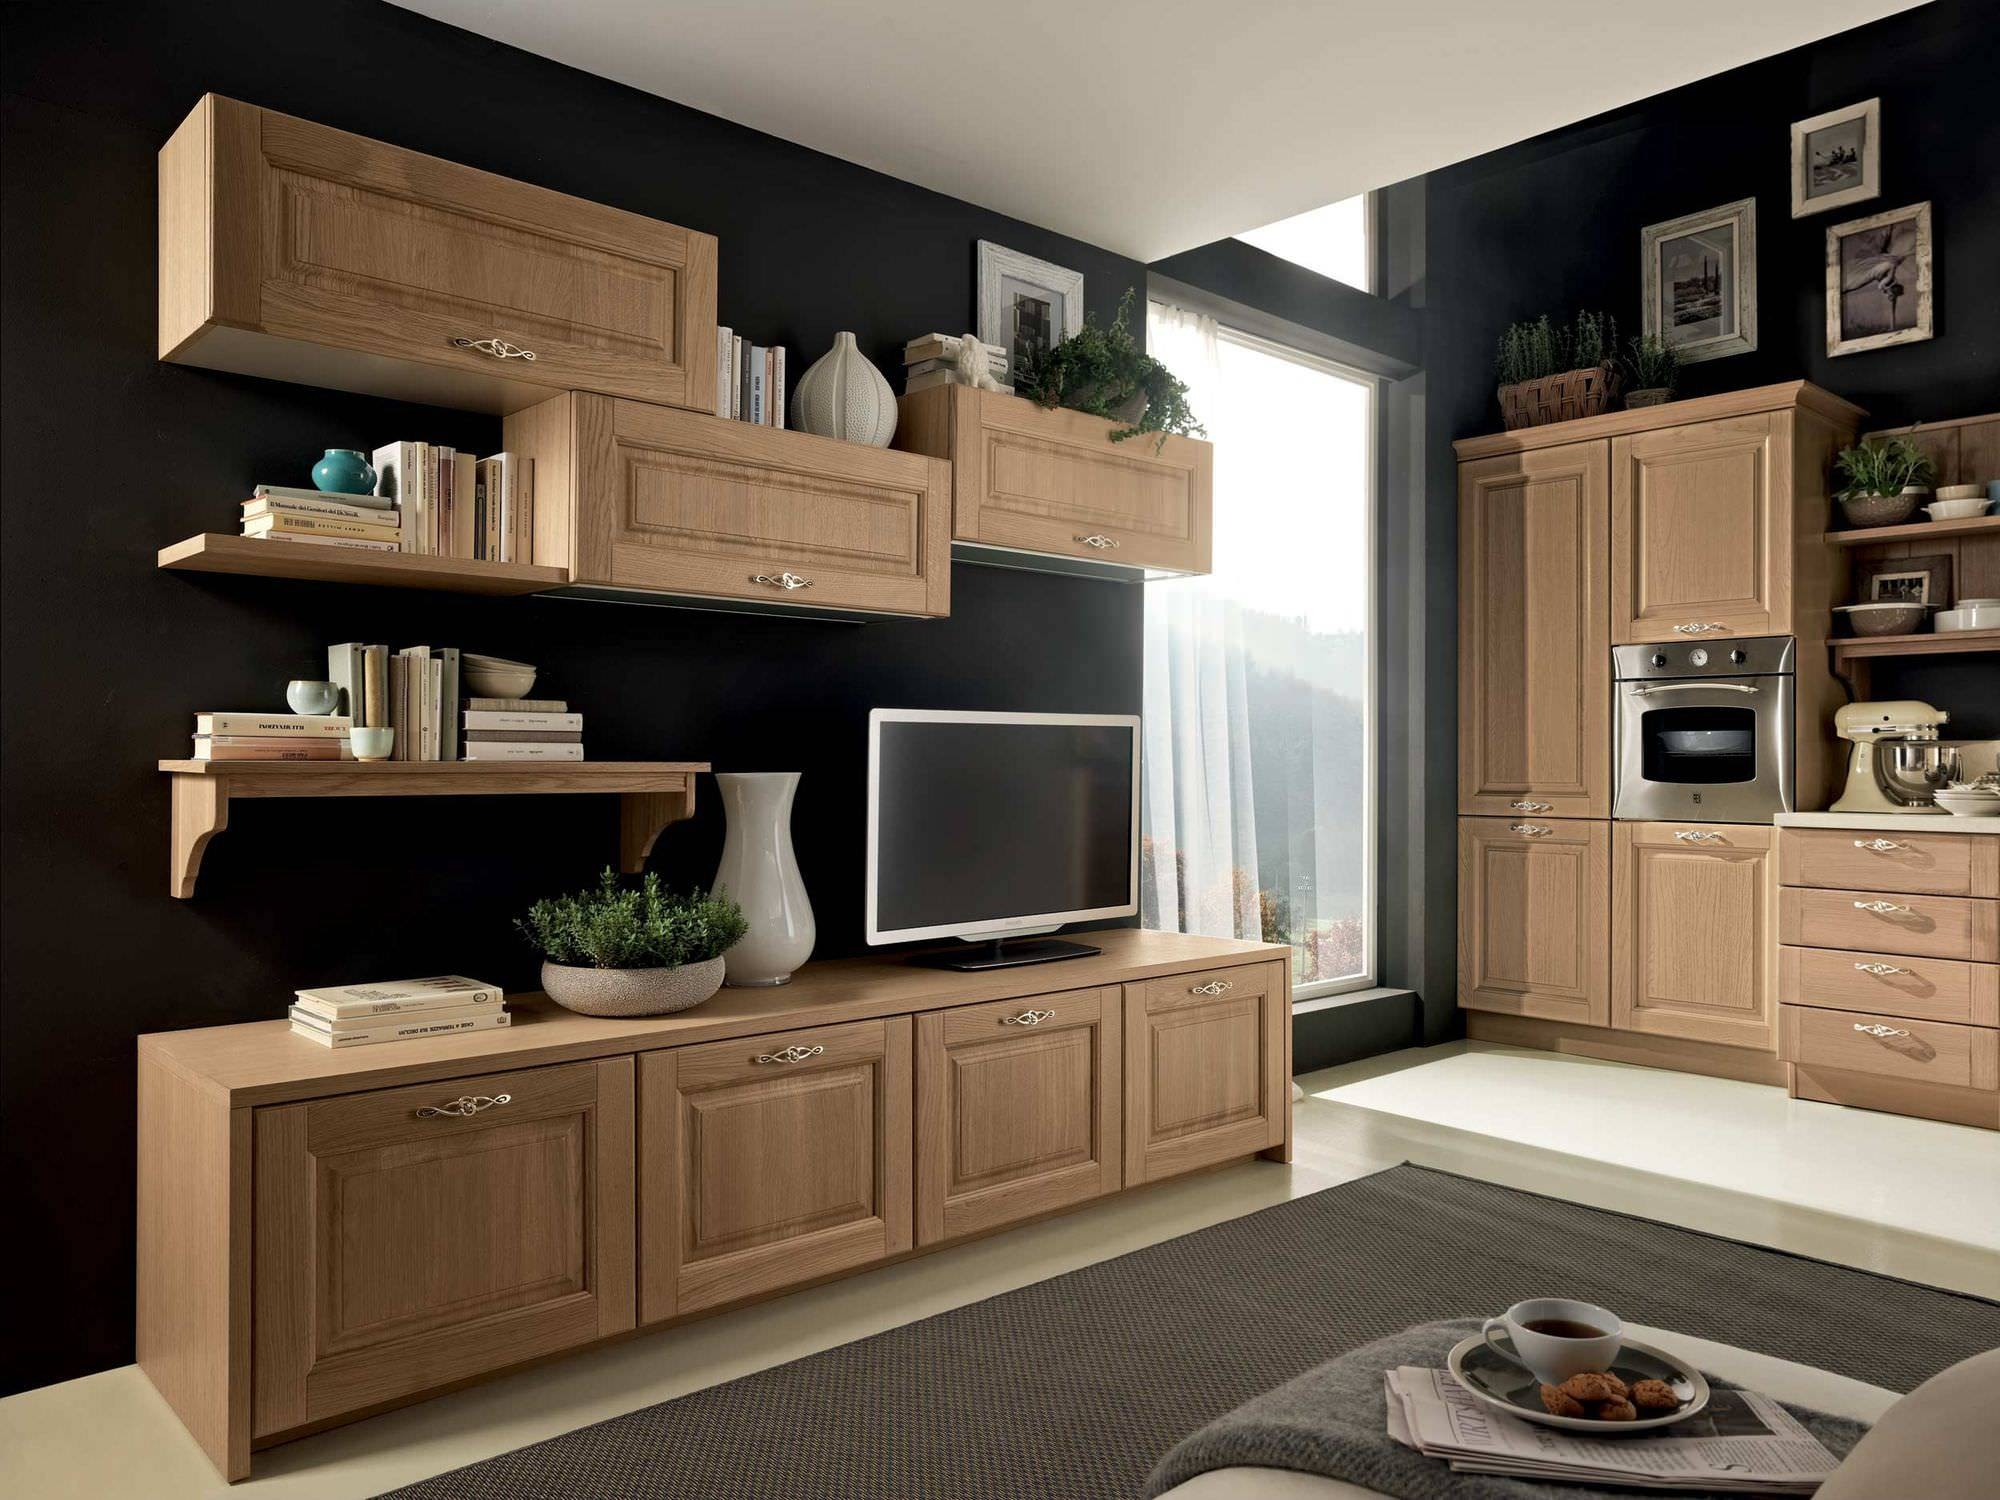 Traditional Tv Cabinet / Wooden – Bolgheri – Stosa Cucine Inside Traditional Tv Cabinets (View 3 of 15)